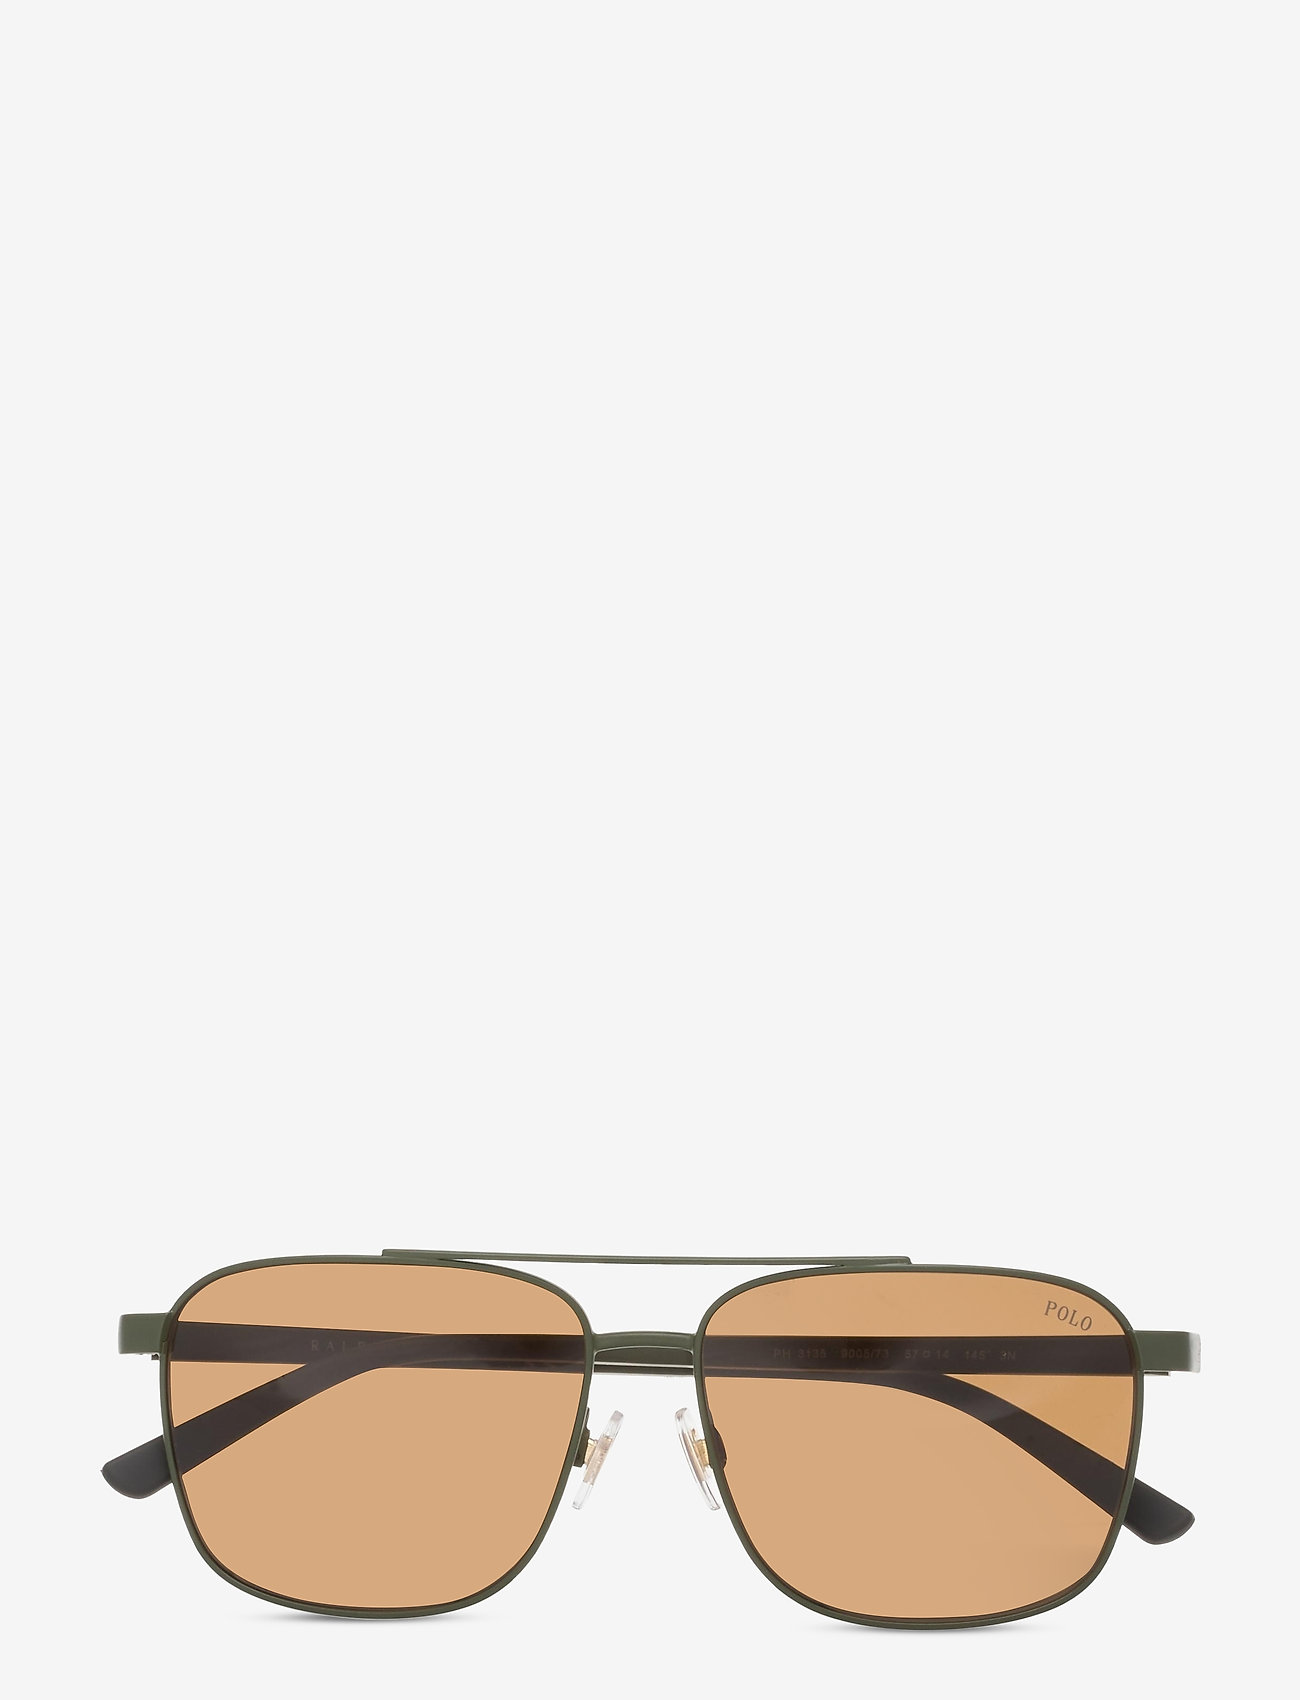 Polo Ralph Lauren - Sunglasses - d-shaped - olive - 0